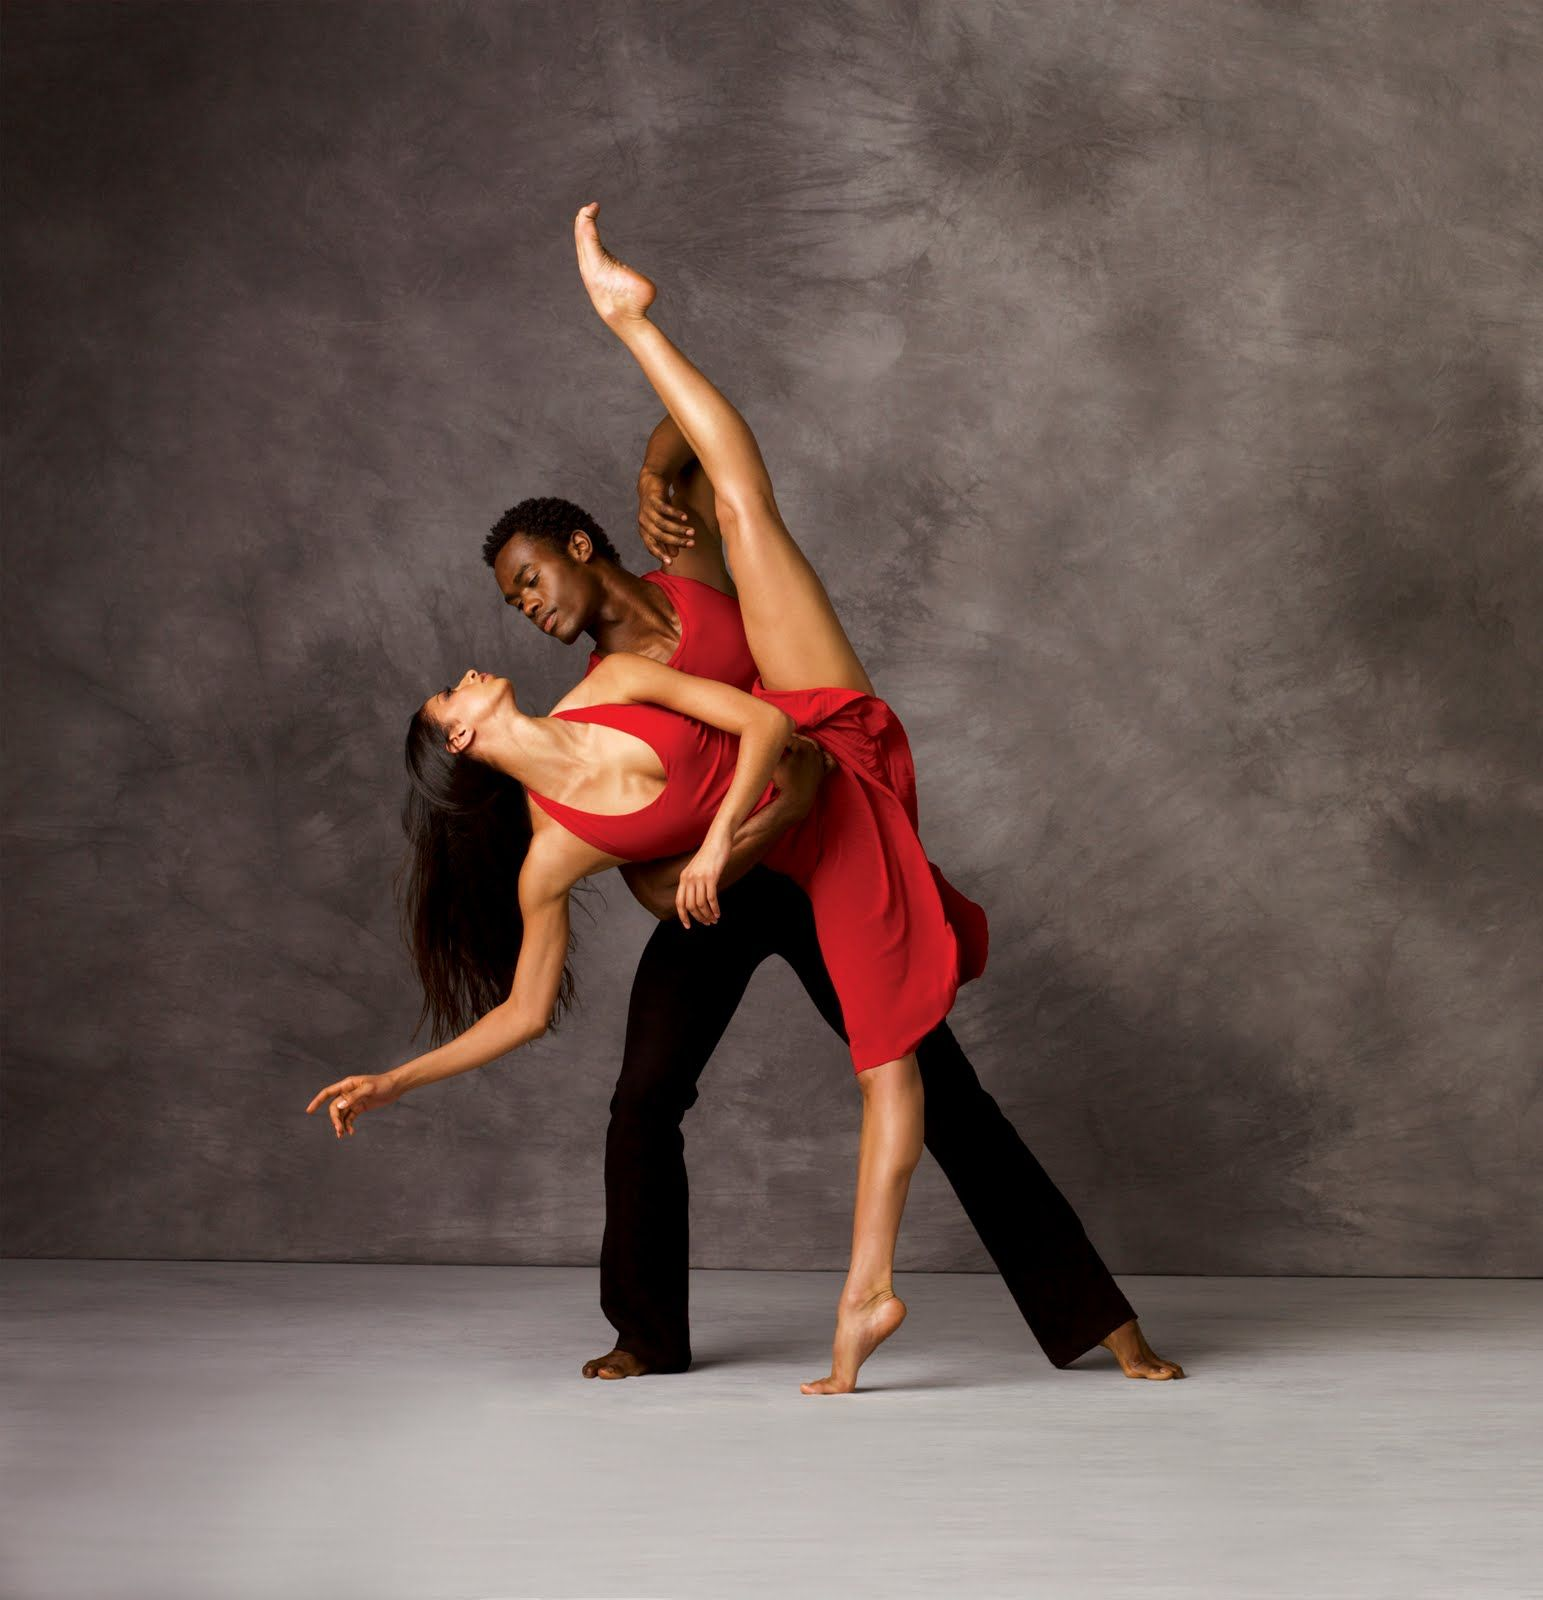 essay salsa Free essay: salsa refers to a fusion of informal dance styles having roots in the caribbean (especially in cuba and north america) the dance originated.